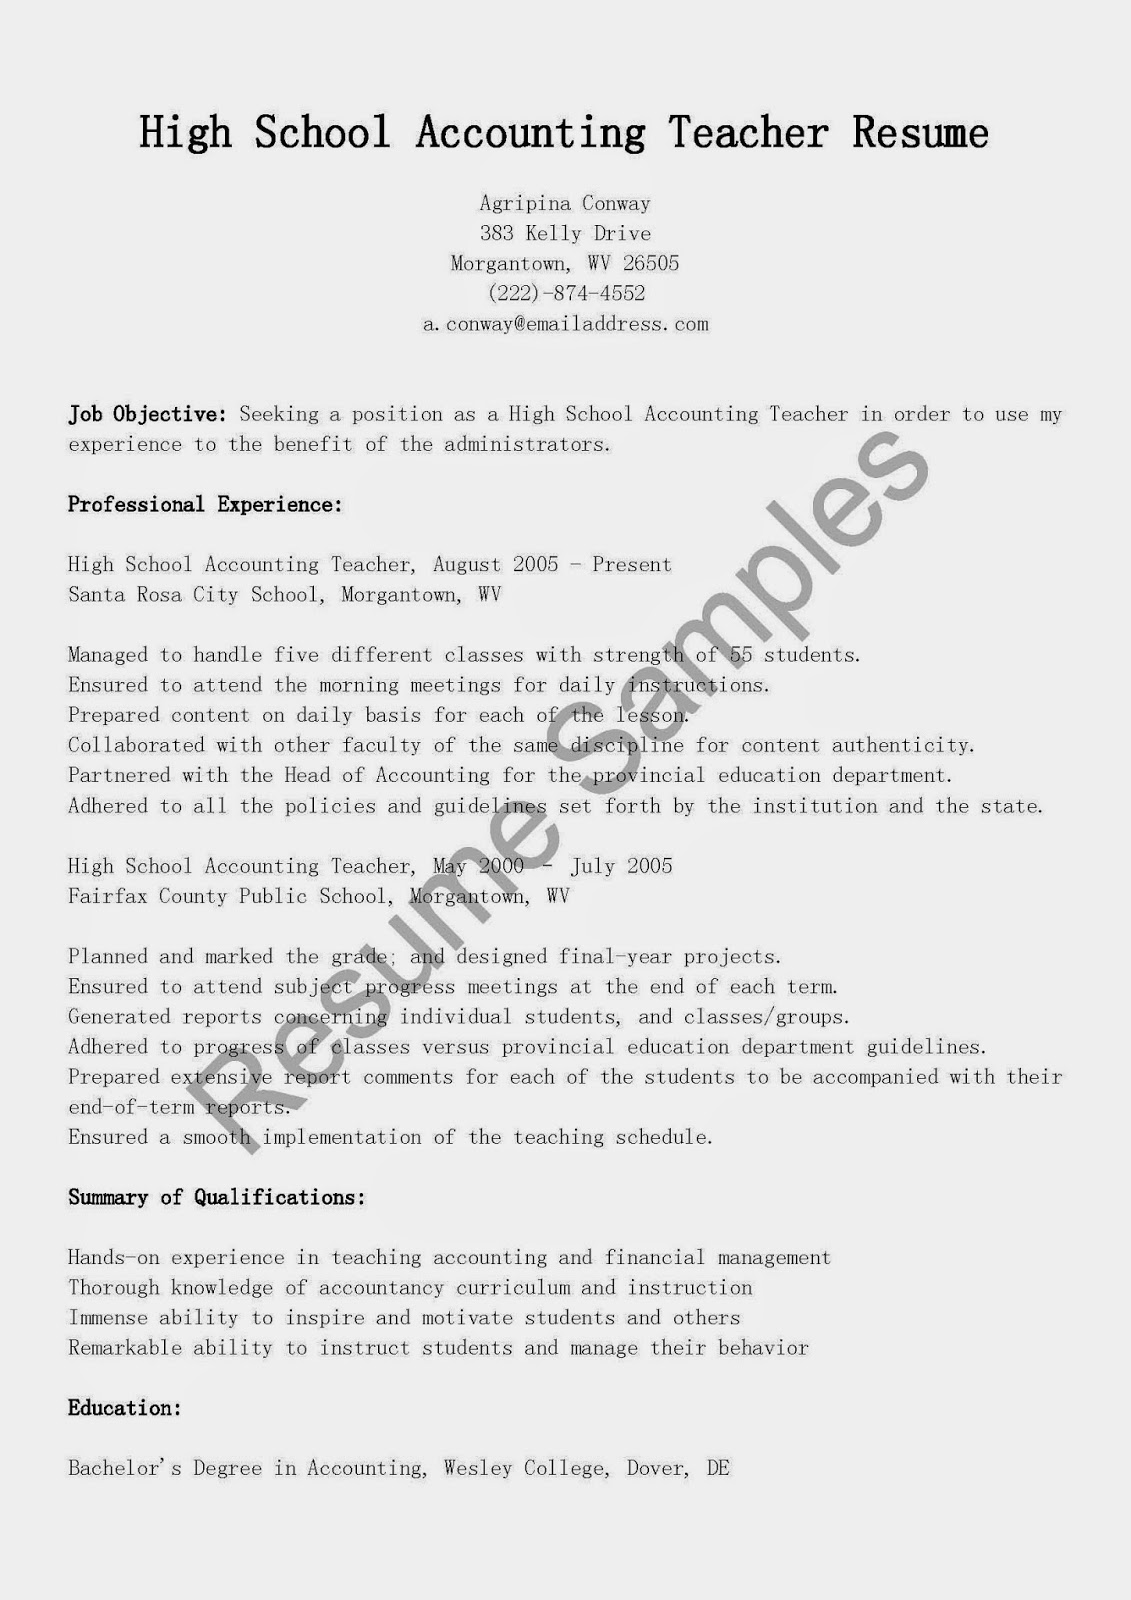 resume samples  high school accounting teacher resume sample